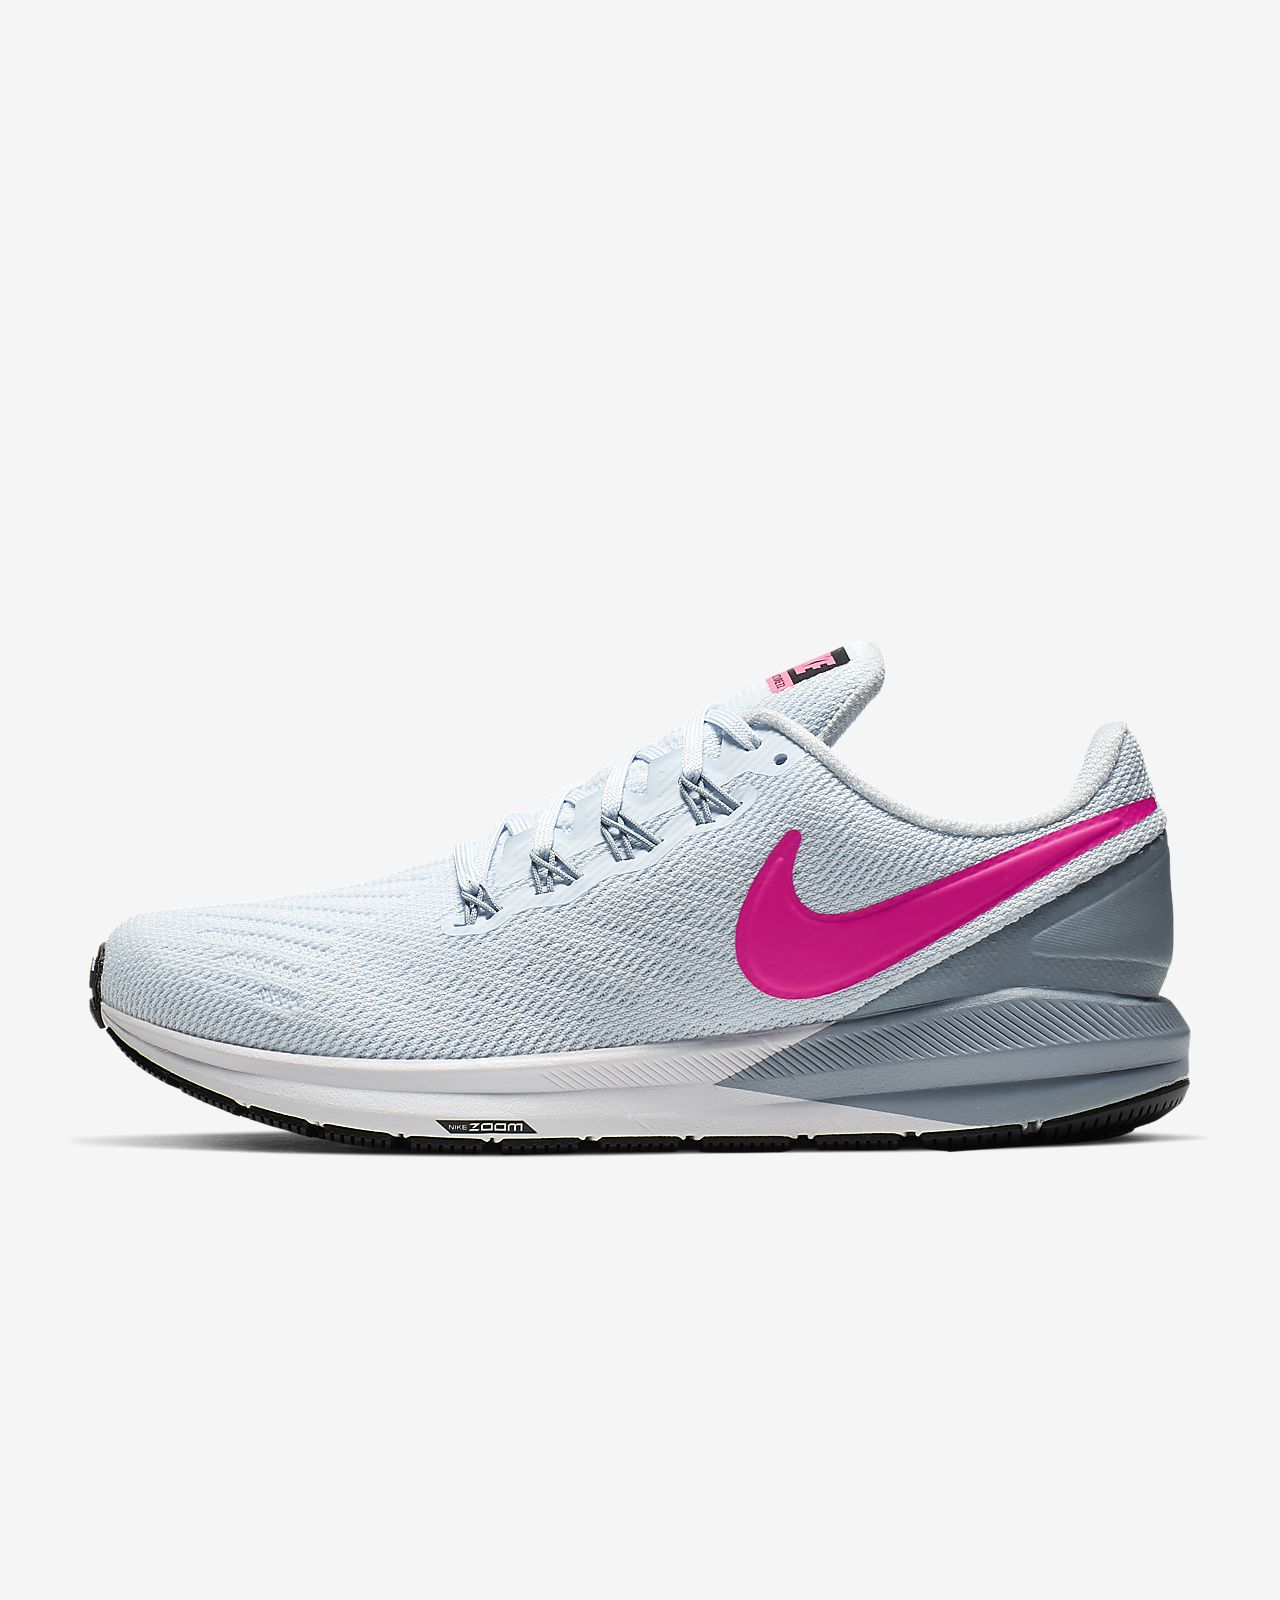 Nike Air Zoom Structure 22 scontate